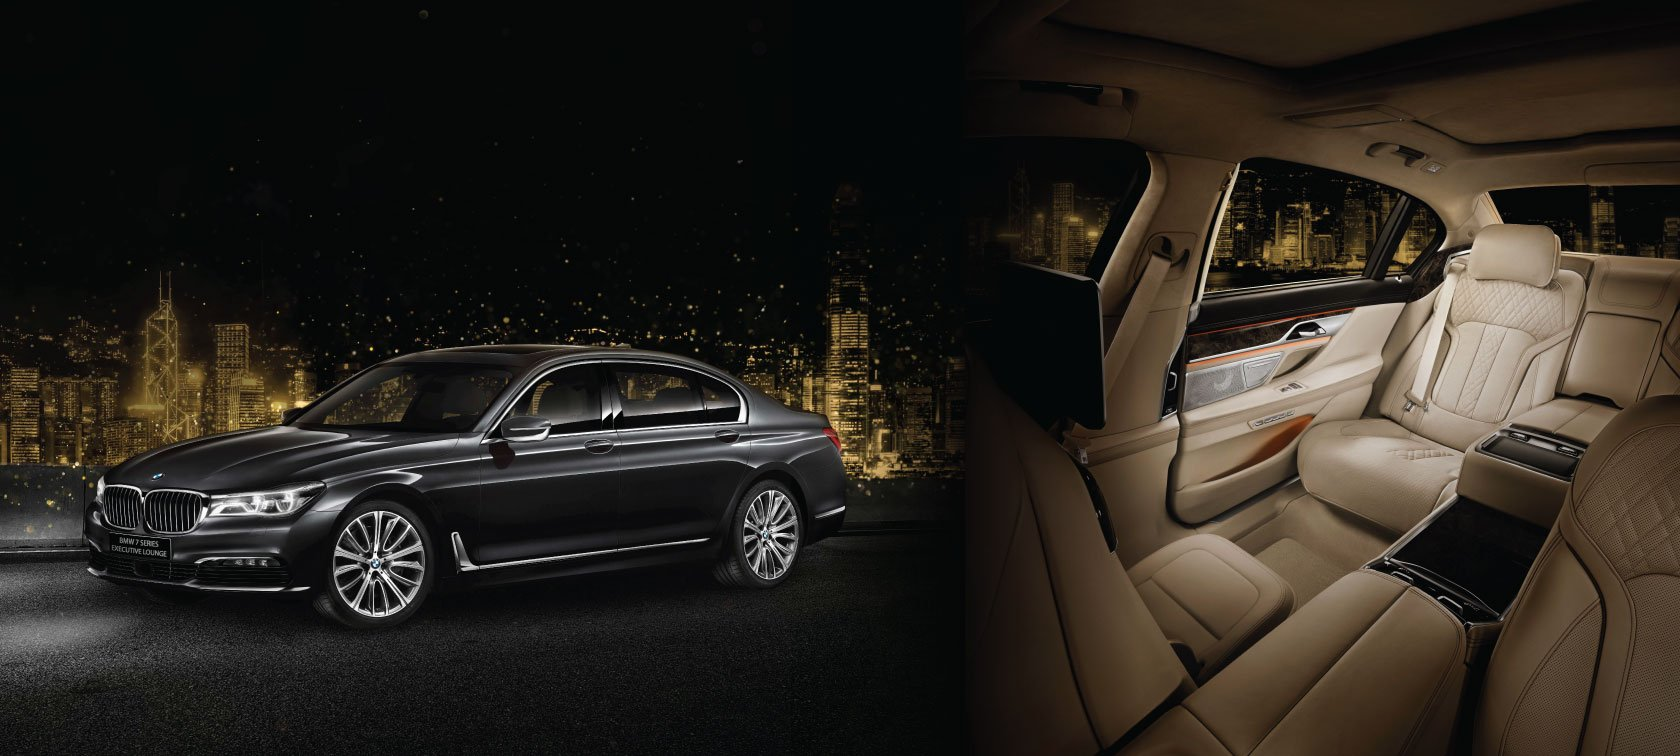 The new bmw 7 series executive lounge